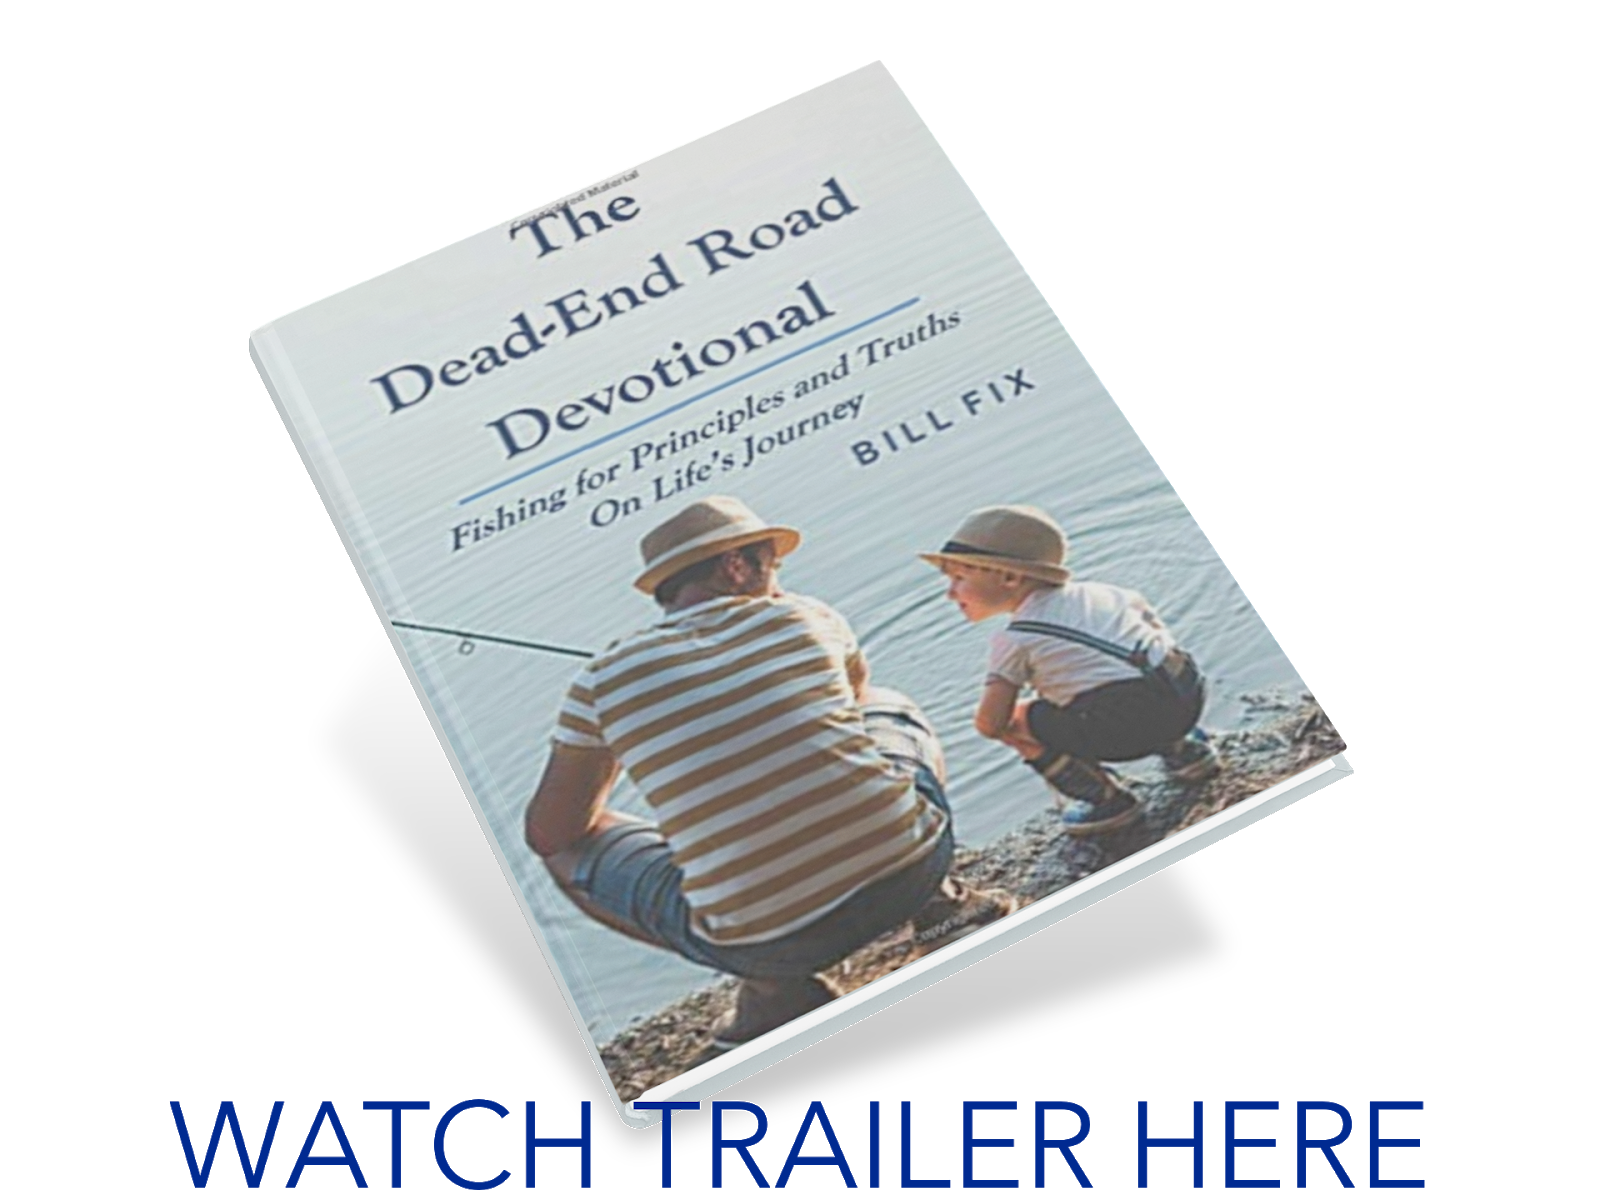 WATCH TRAILER NOW - THE DEAD-END ROAD DEVOTIONAL